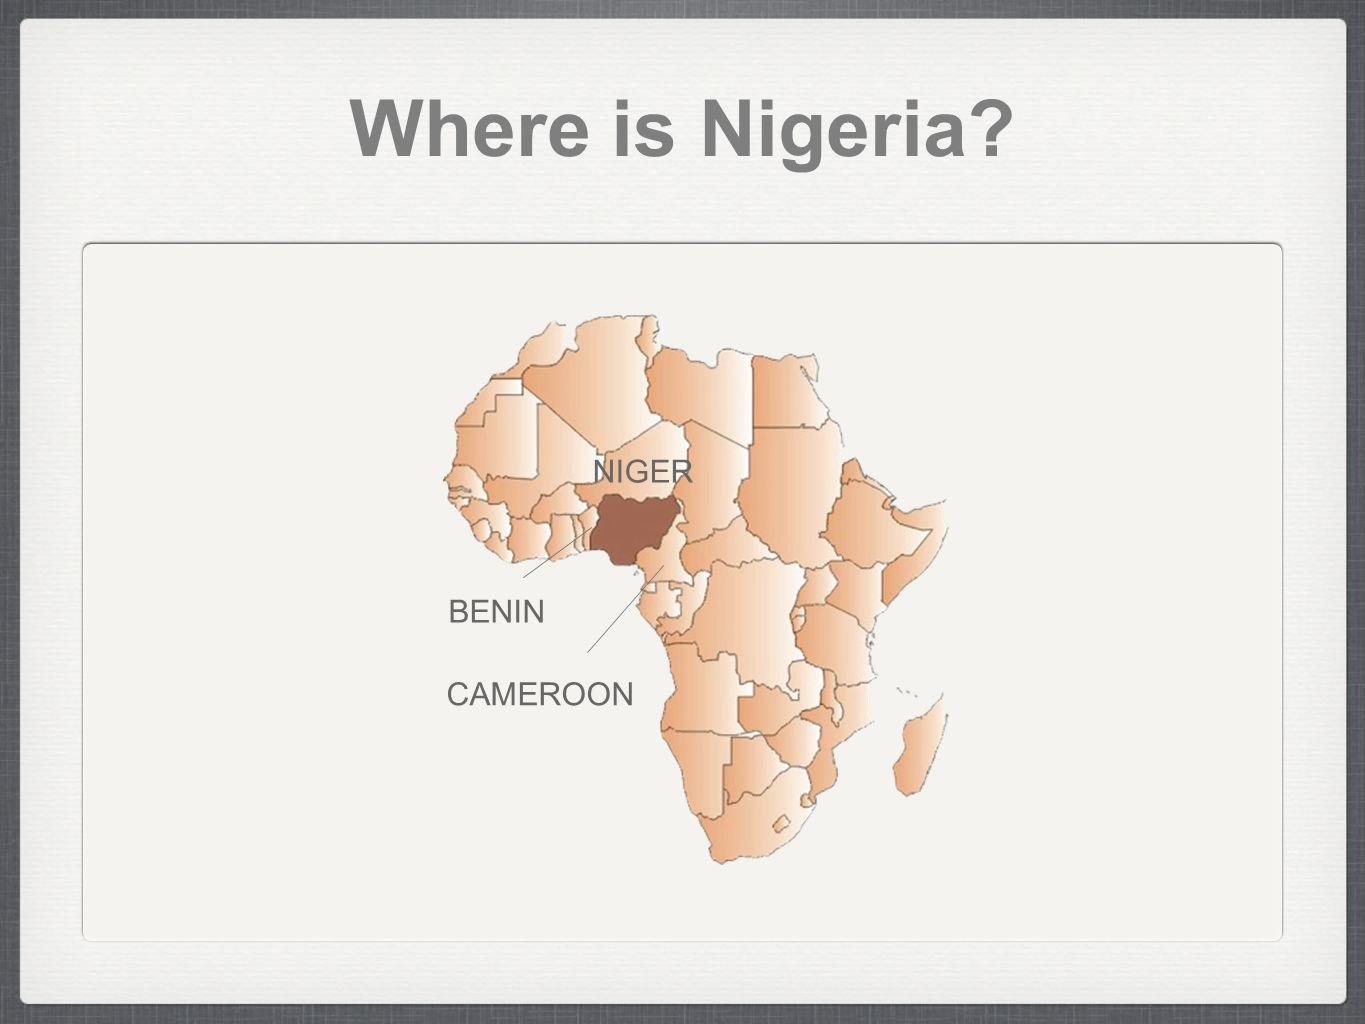 NigeriA Nigeria = Niger(Niger River runs through the country) + Area Capital City - Abuja Population - 149,229,090 (3 x Korea) #1st in Africa, #8th in the World Birth Rate - 39.9/1000 Infant Mortality Rate - 93.9/1000 Approximate Size - 923,768 sq km About twice the size of California Language - English(official), Hausa, Igbo(ibo), and Fulani Religion - Muslim 50%, Christian 40%, Others 10% Education - Happiness Survey Type of Government - Federal Republic Life Expectancy Male - about 46 years Female - about 47~48 years